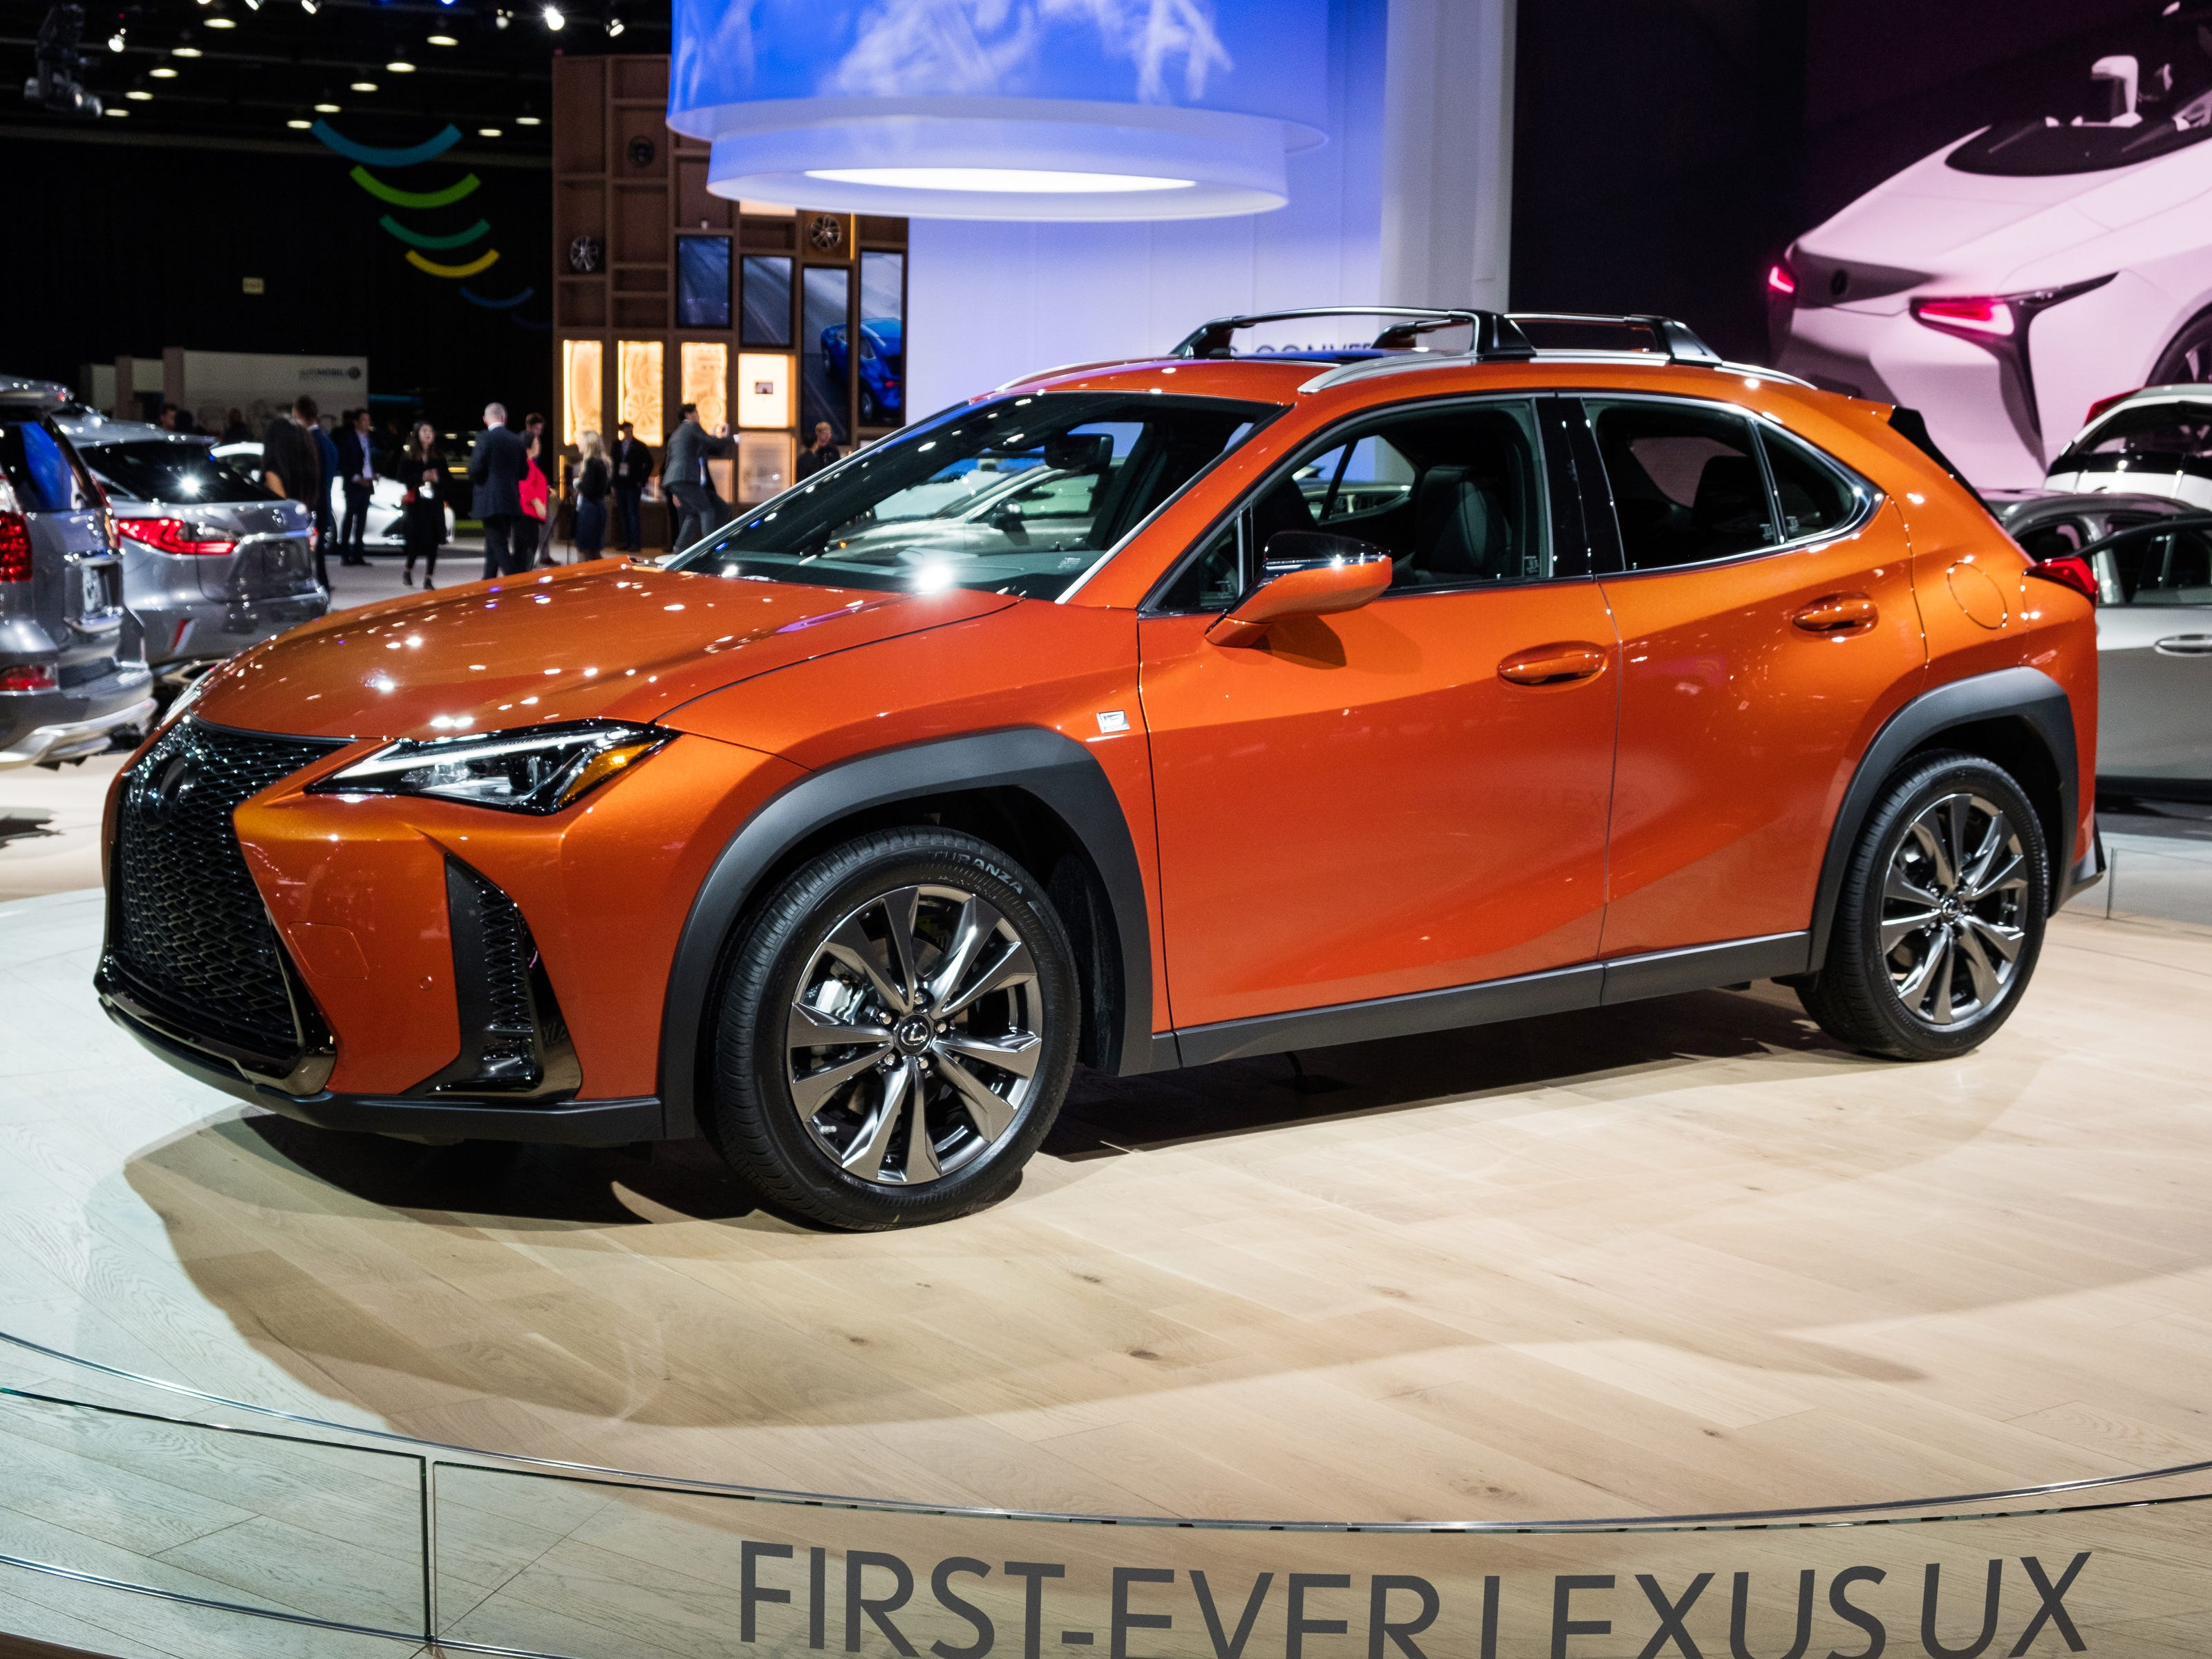 A Lexus UX 200 F Sport sits on the stage during the 2019 North American International Auto Show held at Cobo Center in downtown Detroit on Tuesday, Jan. 15, 2019.  (Via OlyDrop)